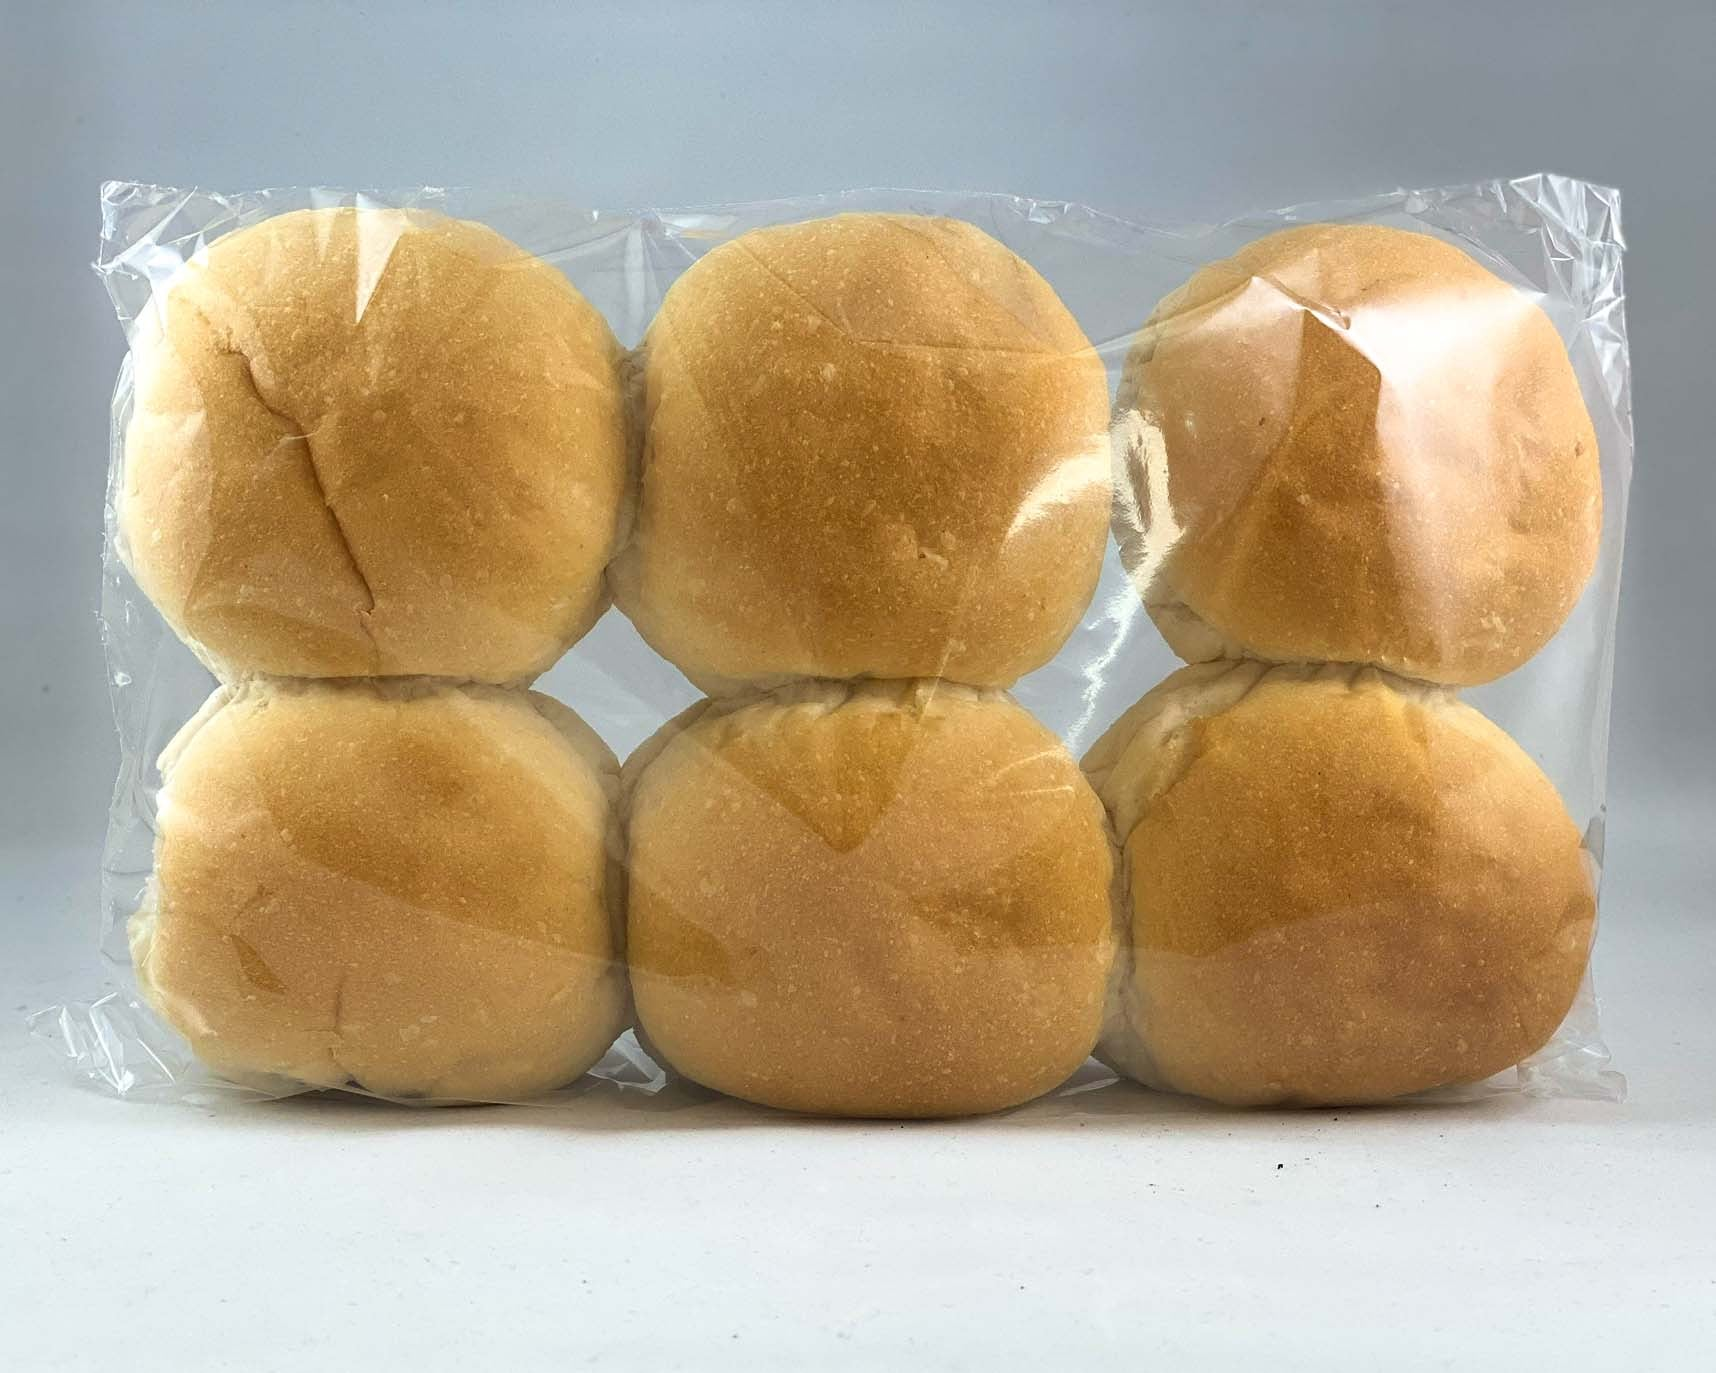 French Oven - 6 Soft White Bread Buns